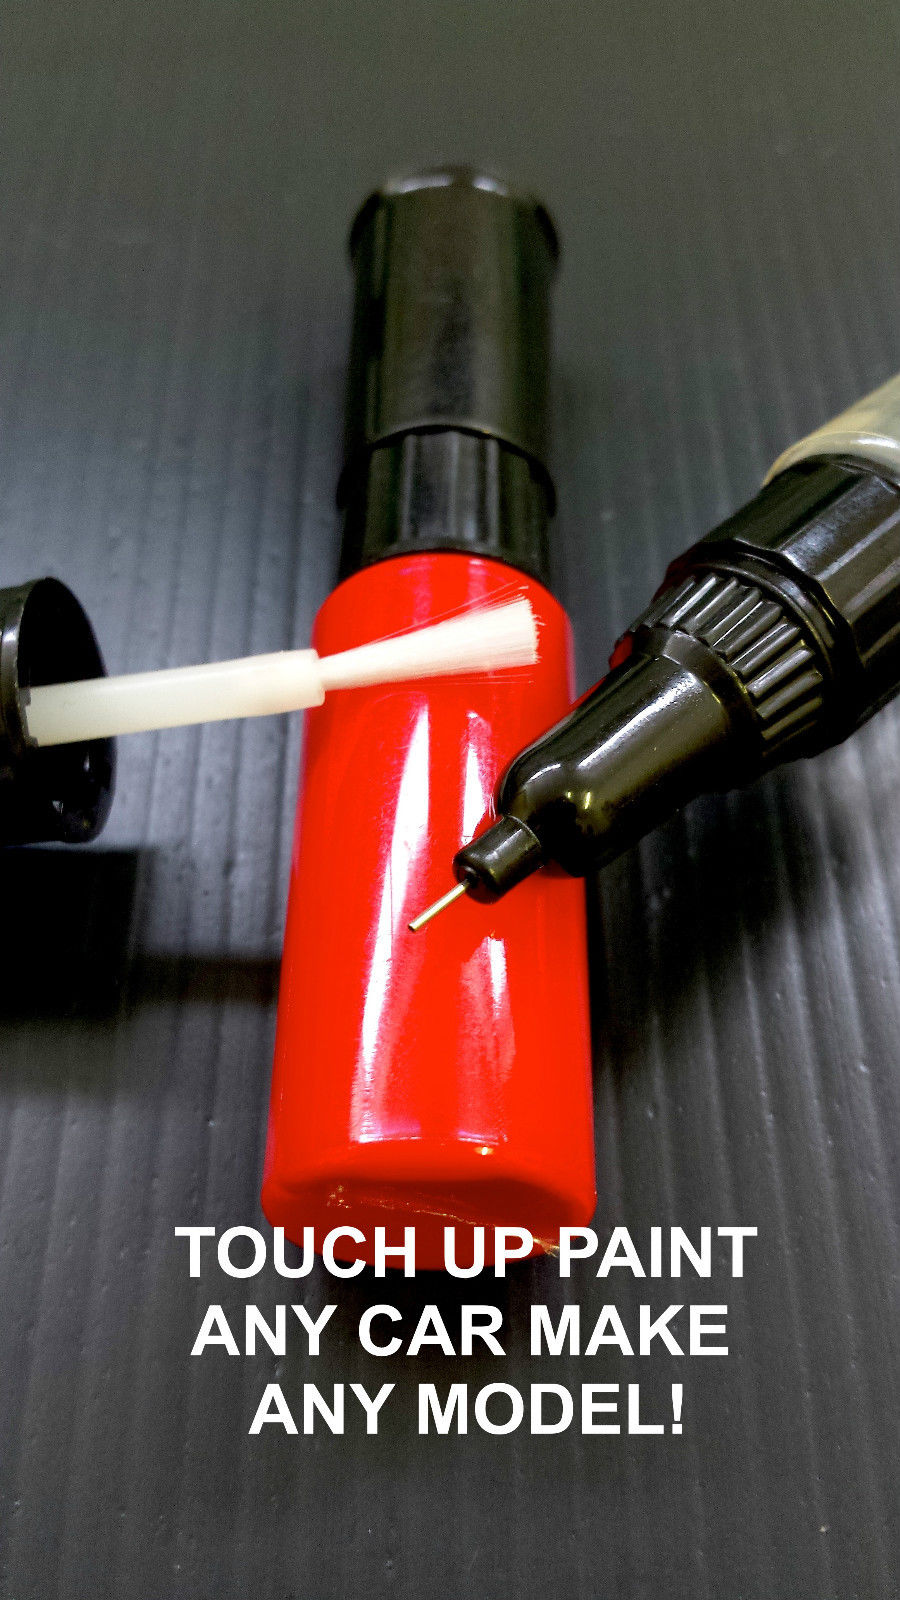 NISSAN X-TRAIL TOUCH UP PAINT ALL CARS BRUSH & PEN MADE TO YOUR COLOUR CODE